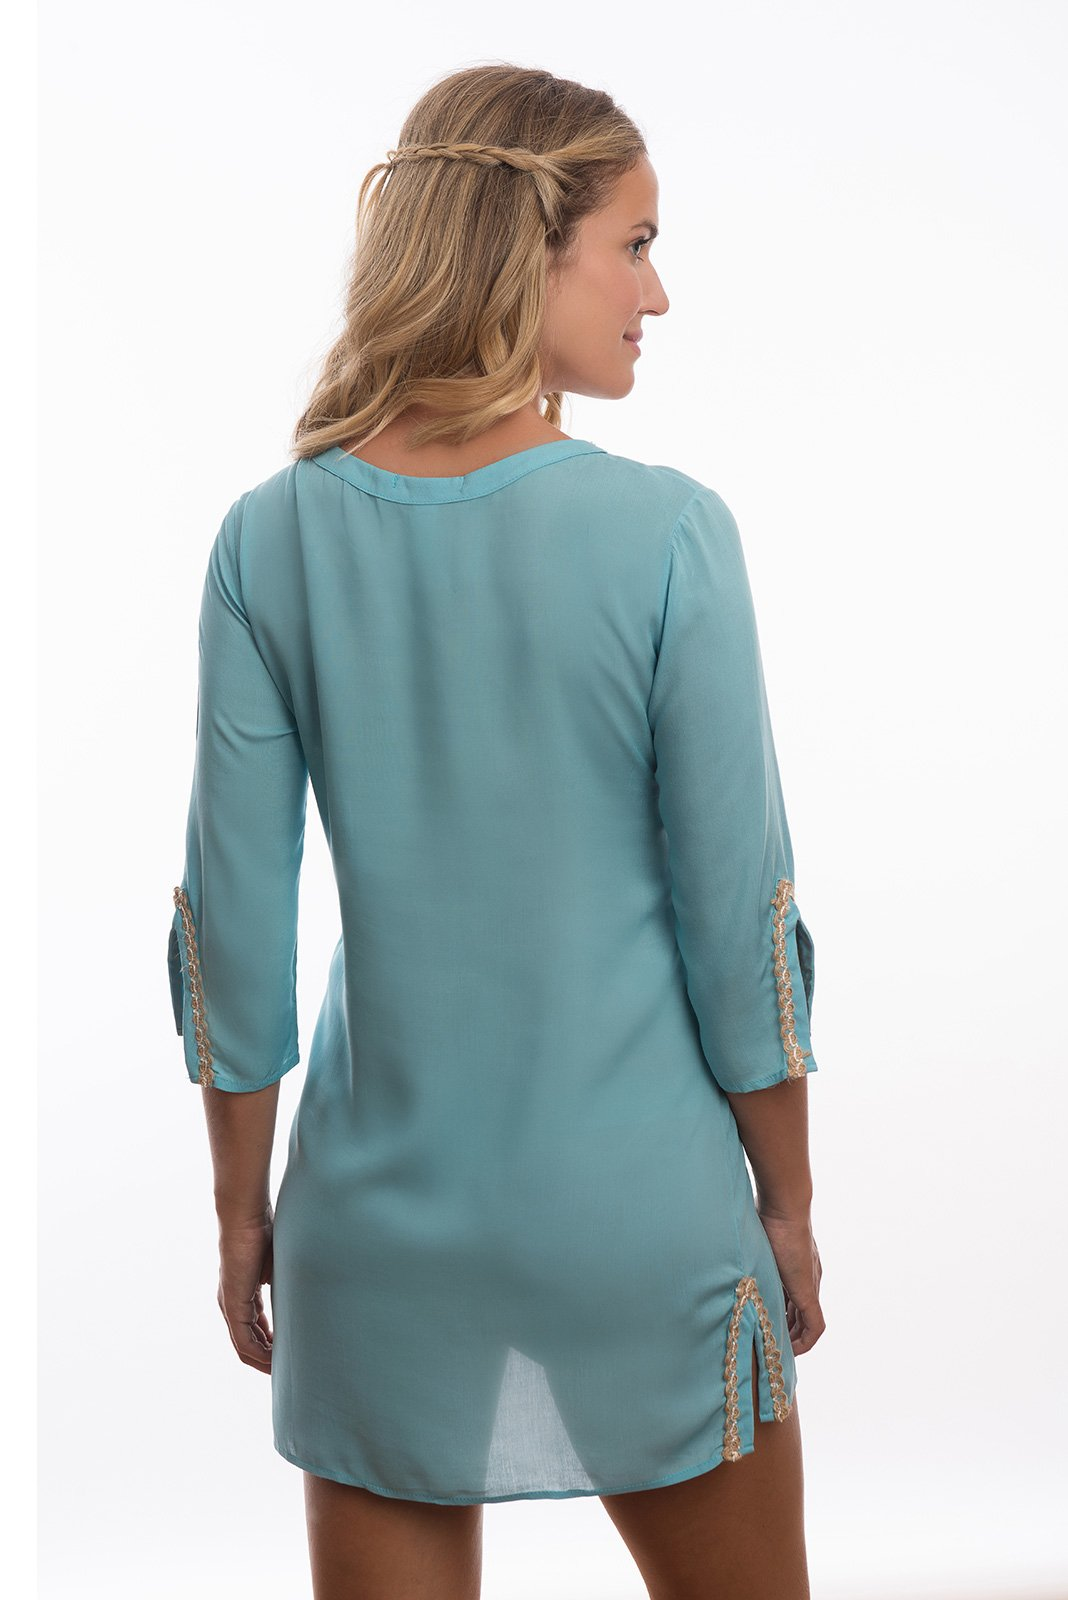 Pale Blue Flower Embroidered Beach Tunic Rajasthan